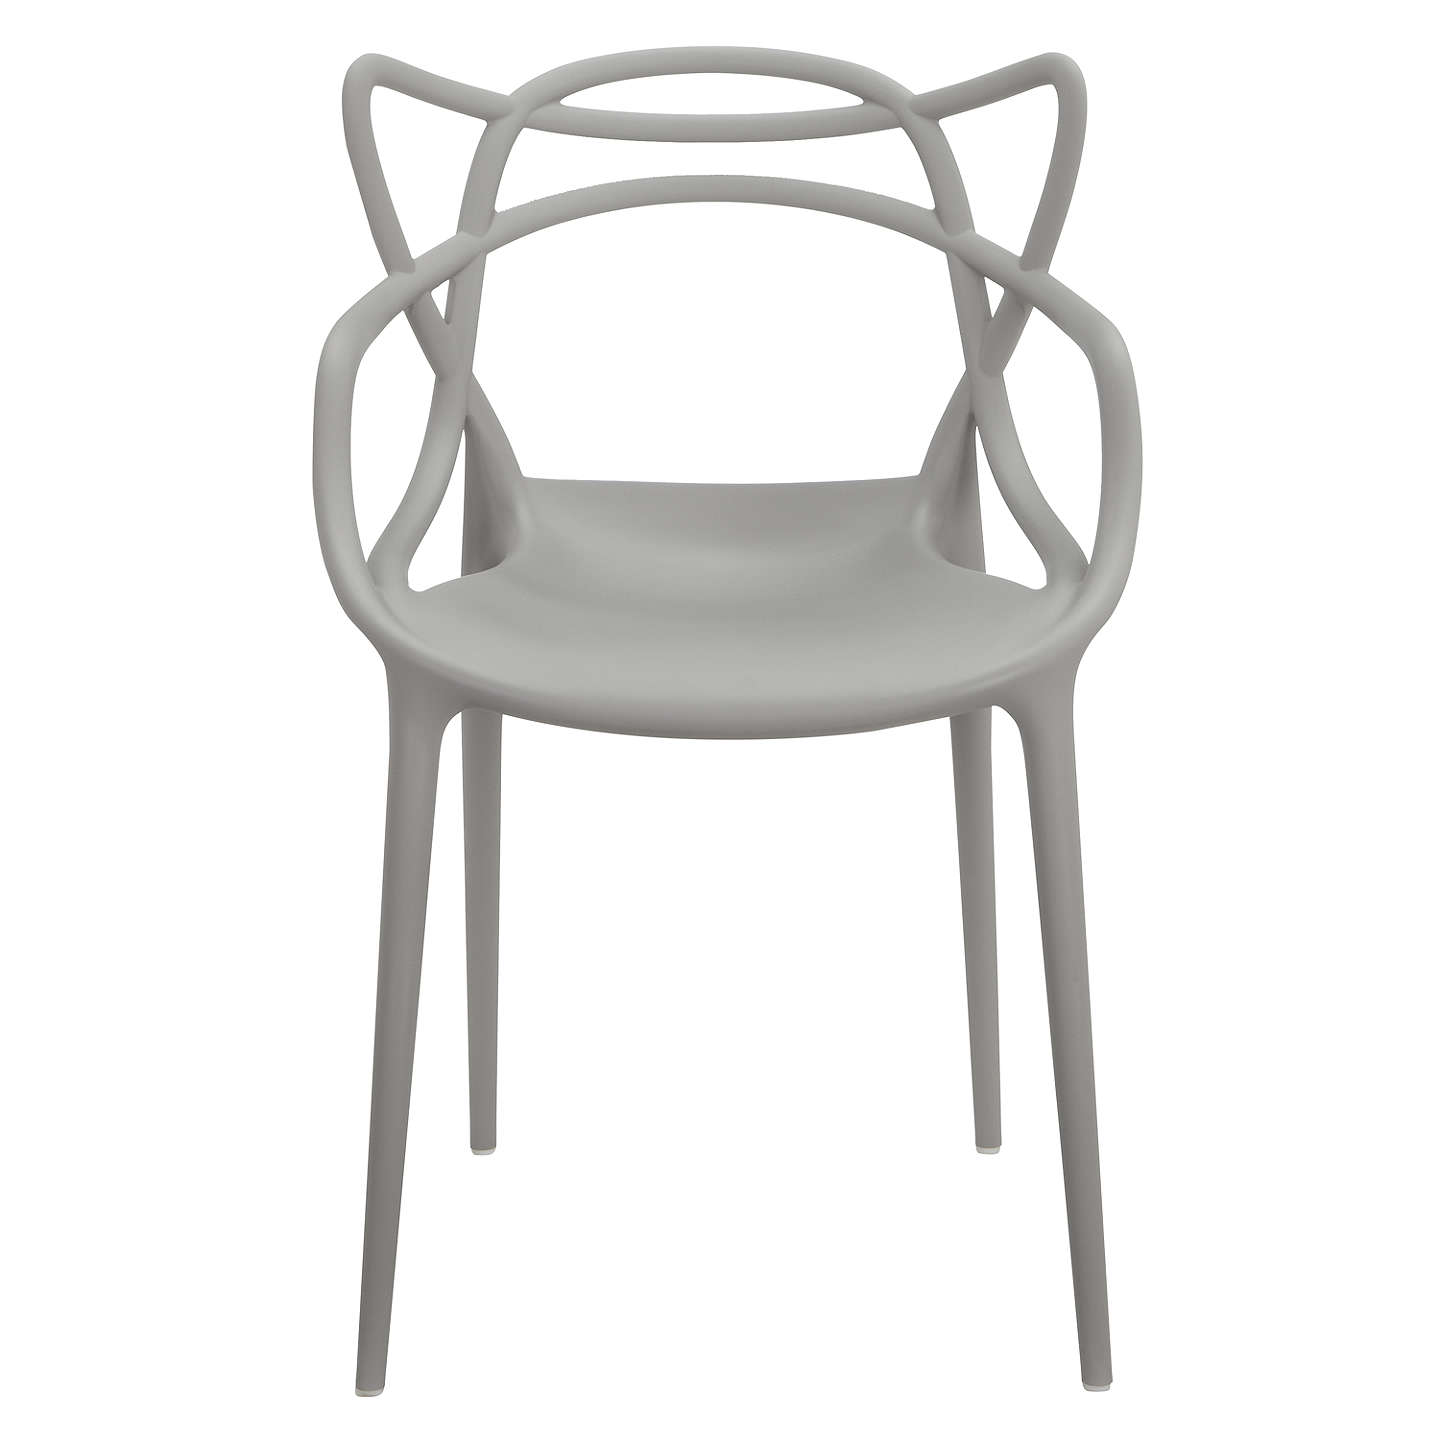 BuyPhilippe Starck for Kartell Masters Chair, Grey Online at johnlewis.com